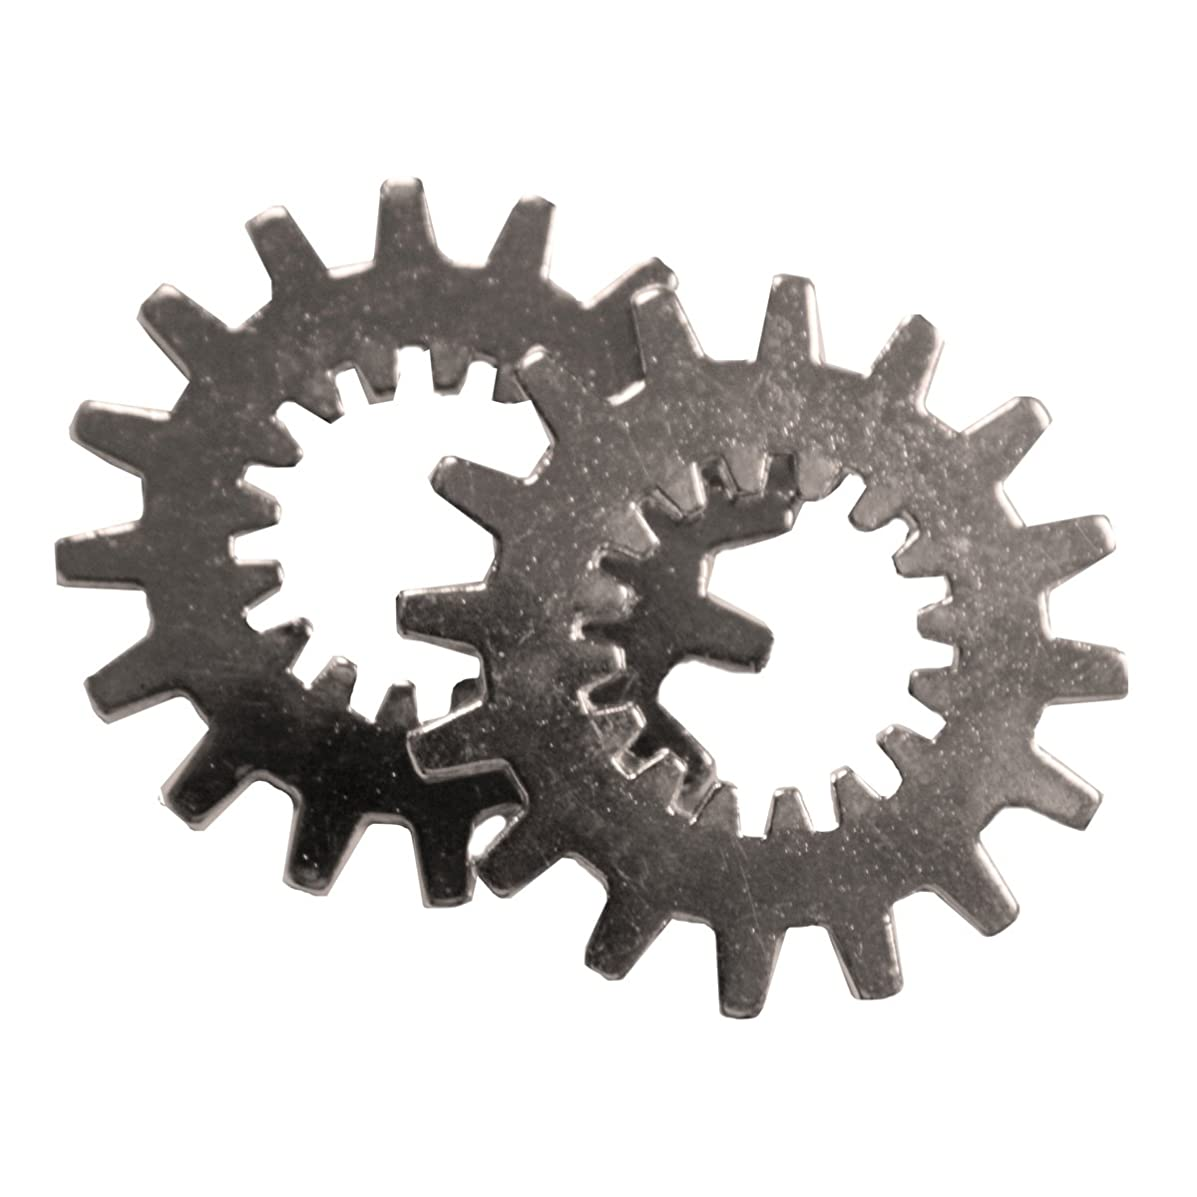 FabScraps Silver Embellishments, Small Cogs, 20-Pack